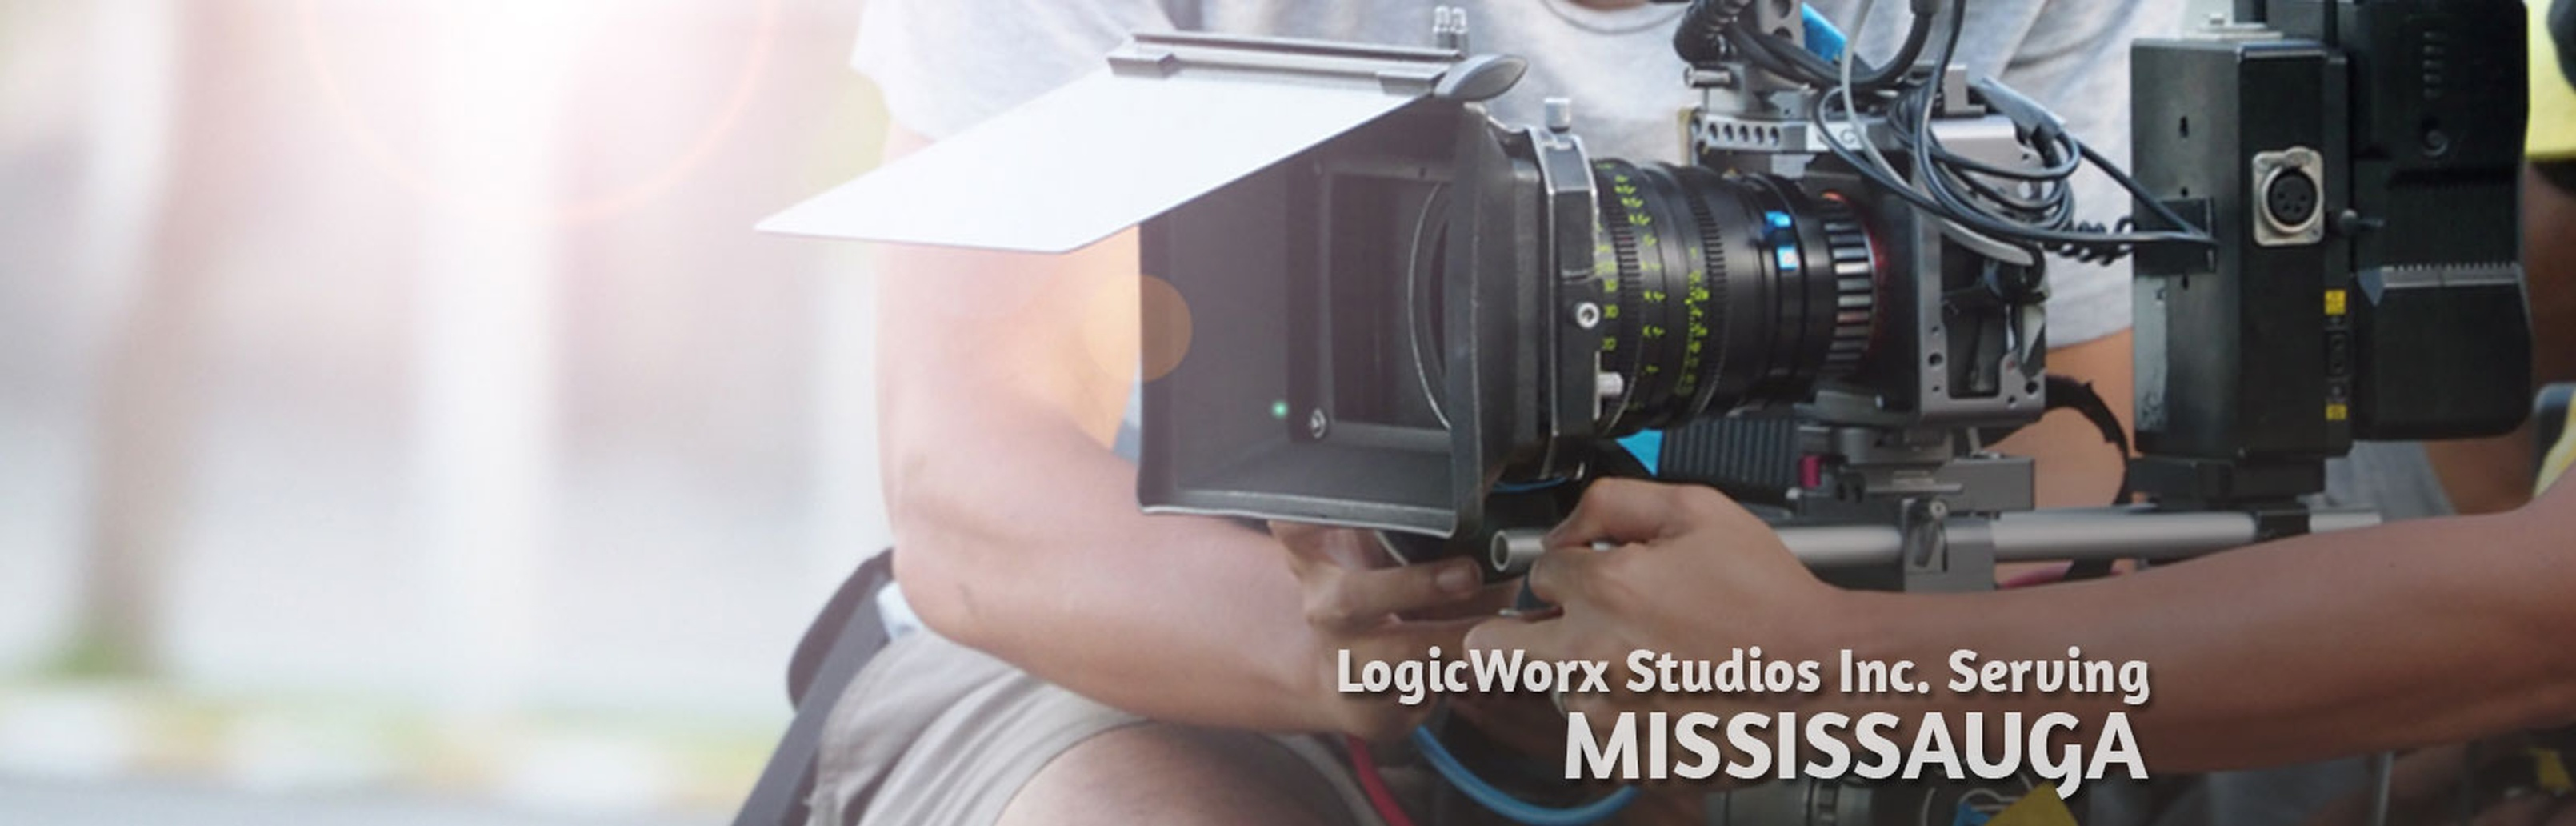 commercial photography video production services mississauga on